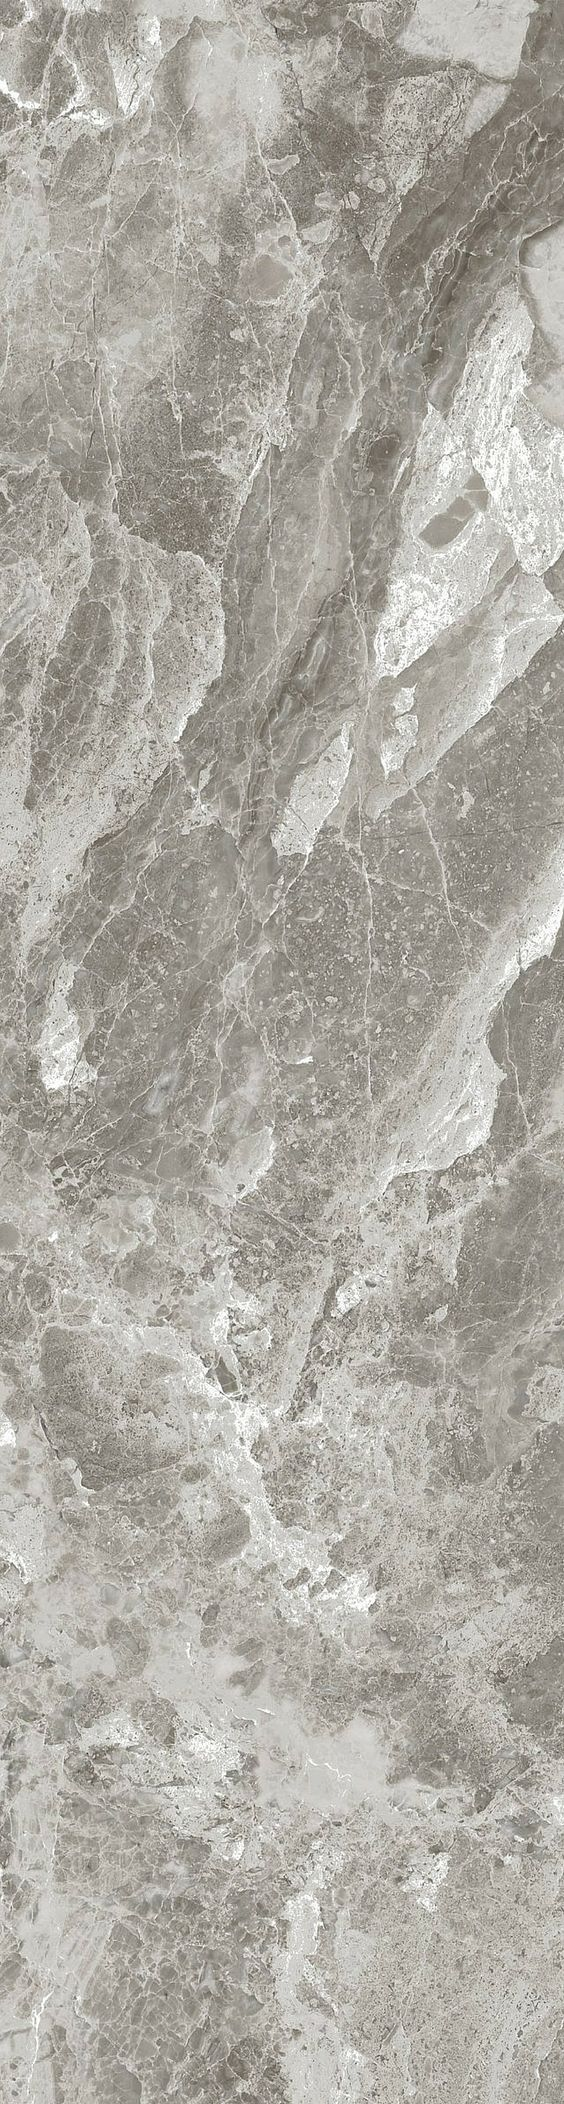 Porcelain Tile | Marble Look Classic Bardiglietto…: